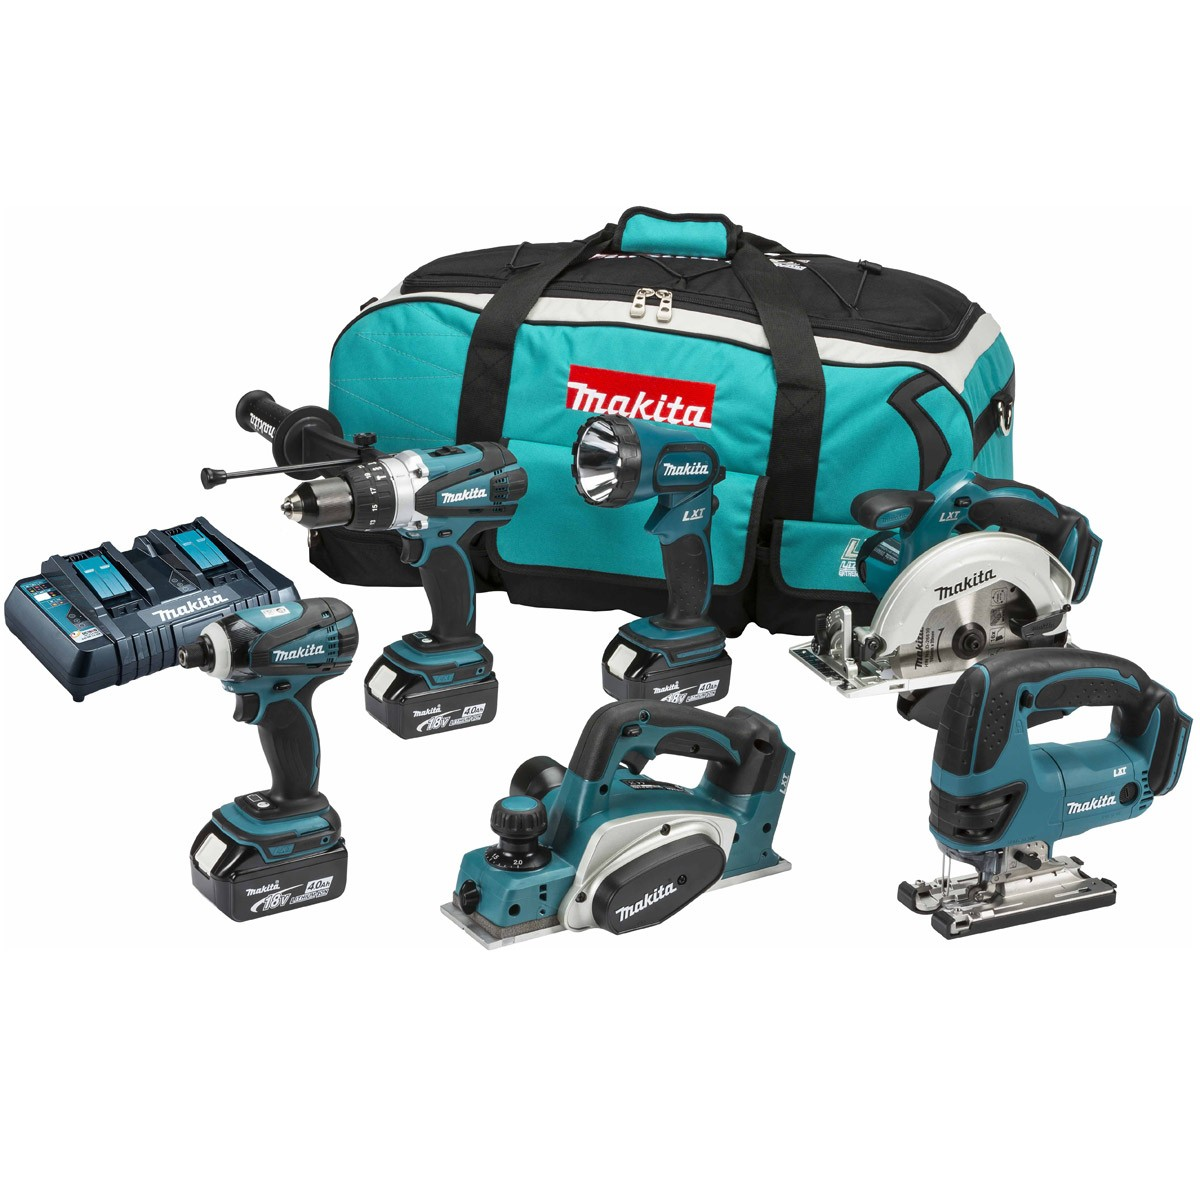 makita dlx6012pm 18v 6 piece kit inc 3x 4ah batts with twin charger powertool world. Black Bedroom Furniture Sets. Home Design Ideas